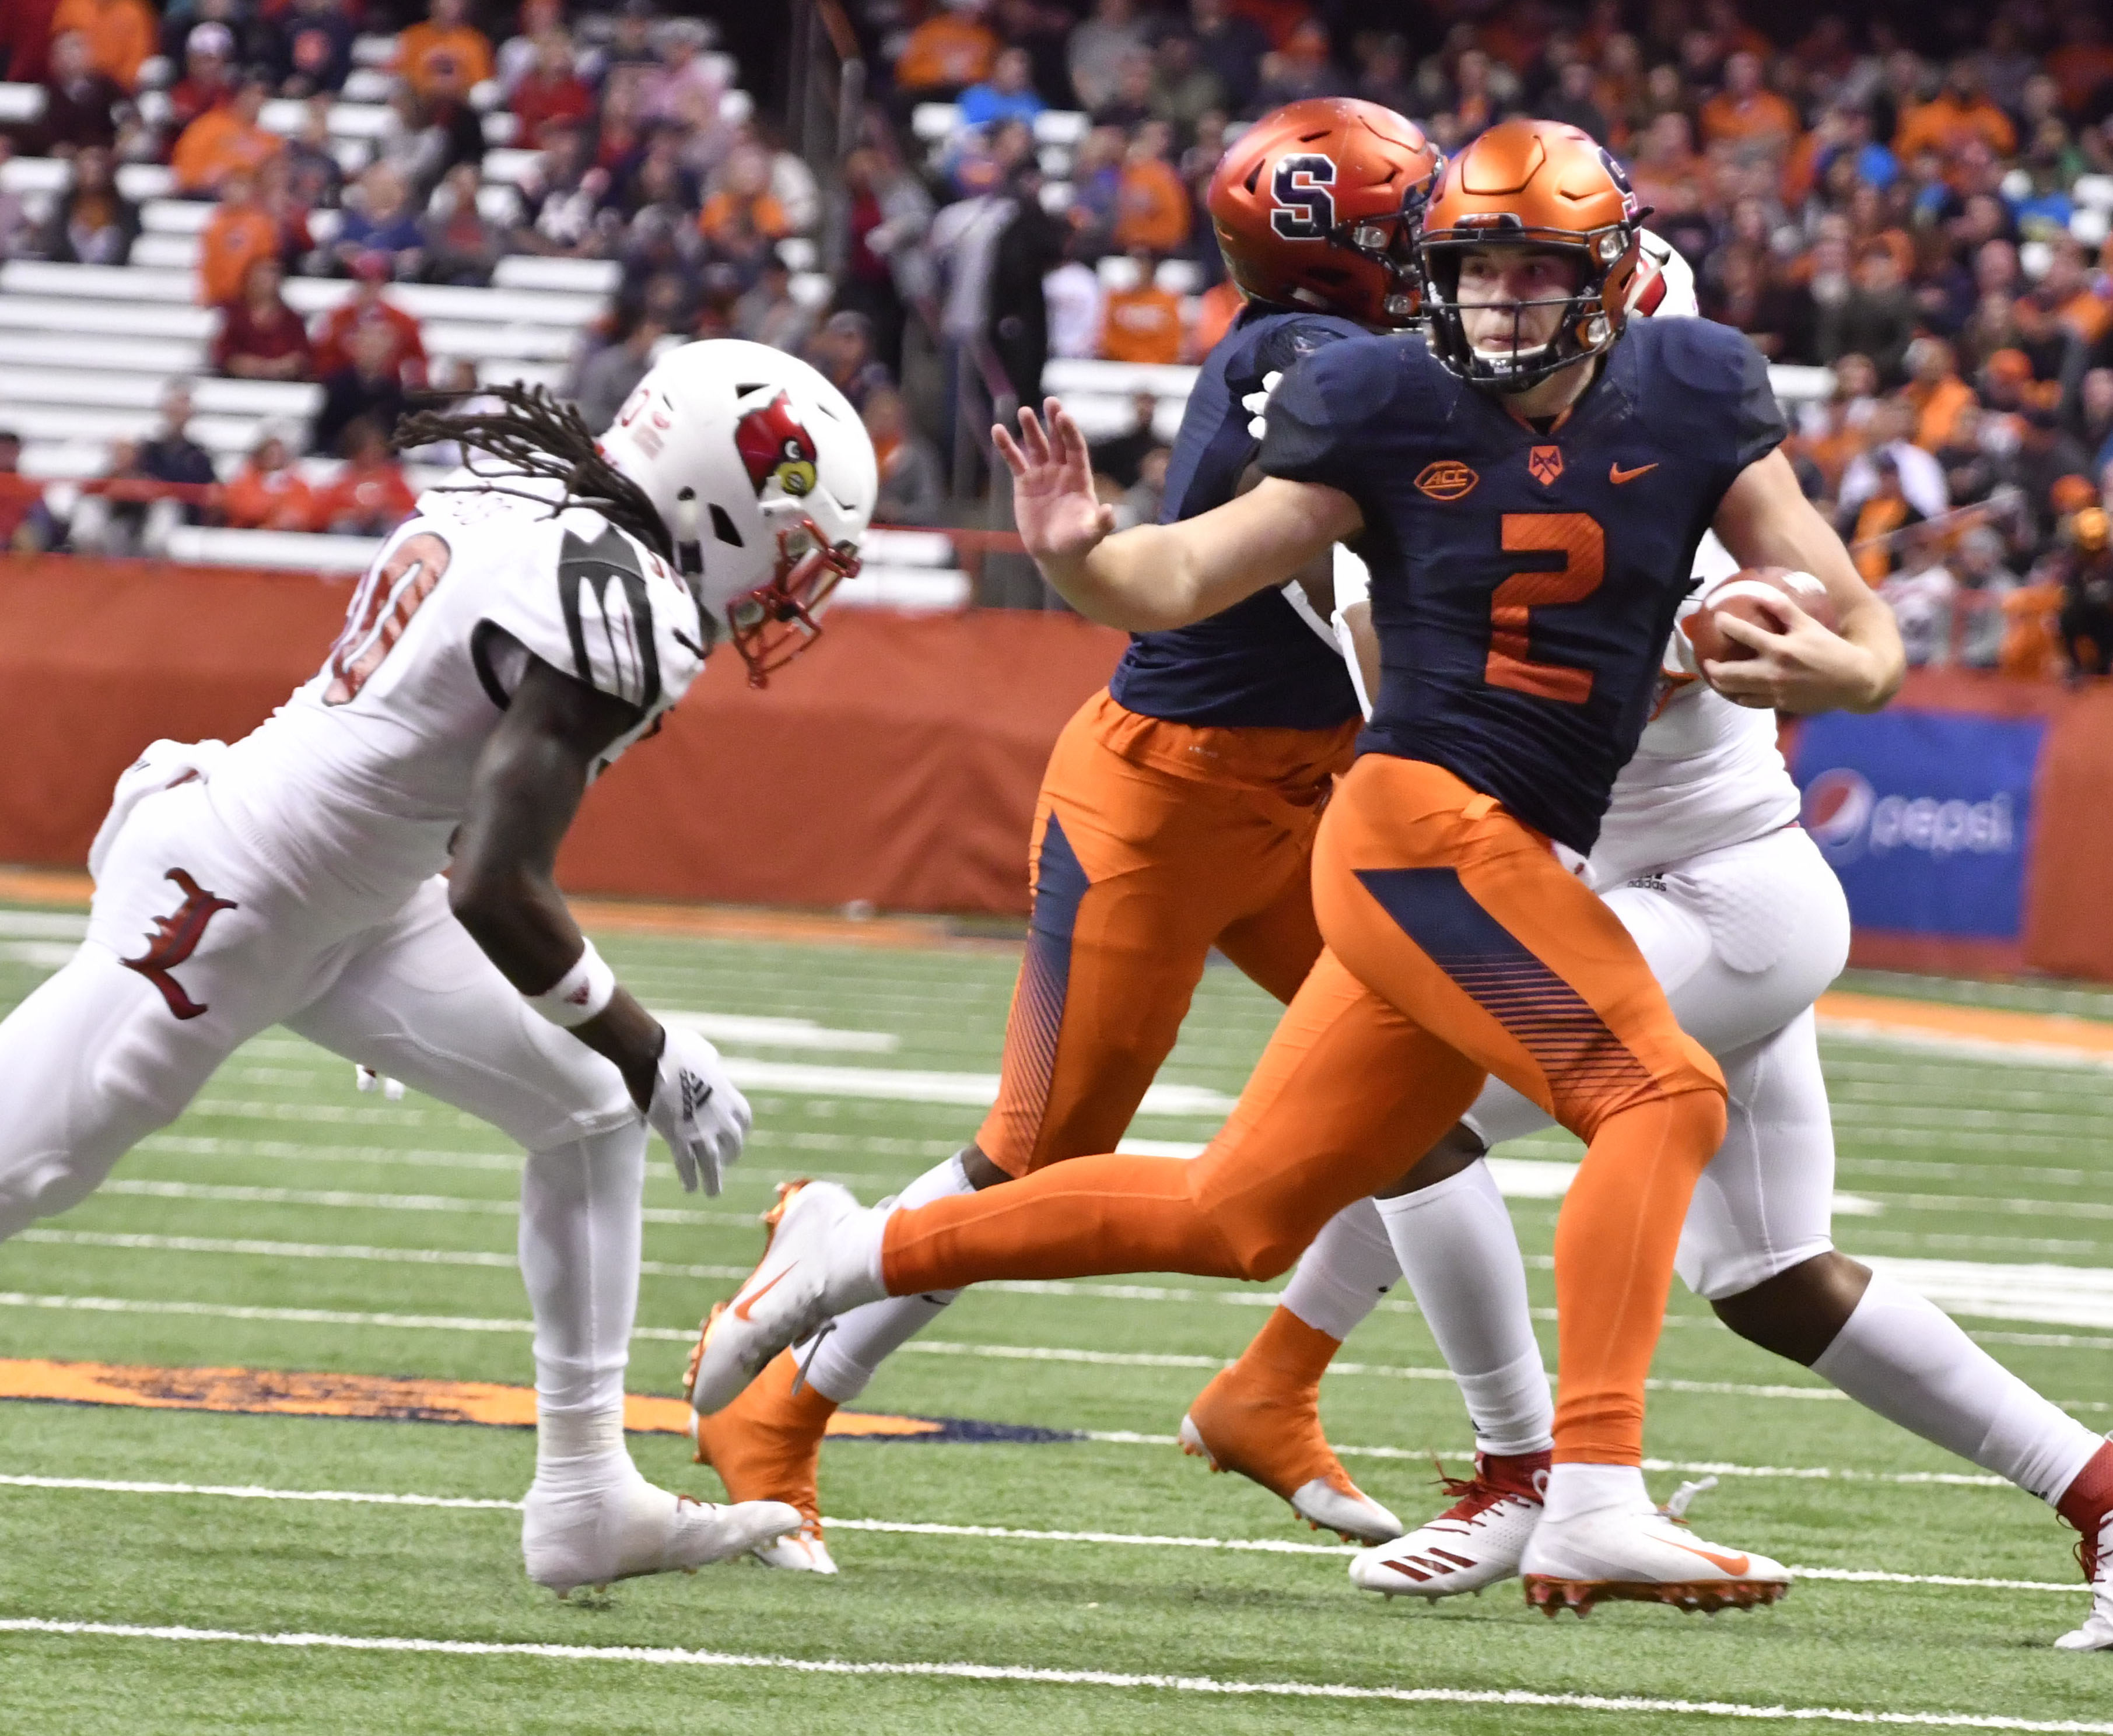 Syracuse Dismantled Louisville And Will Be Final Playoff Hurdle For